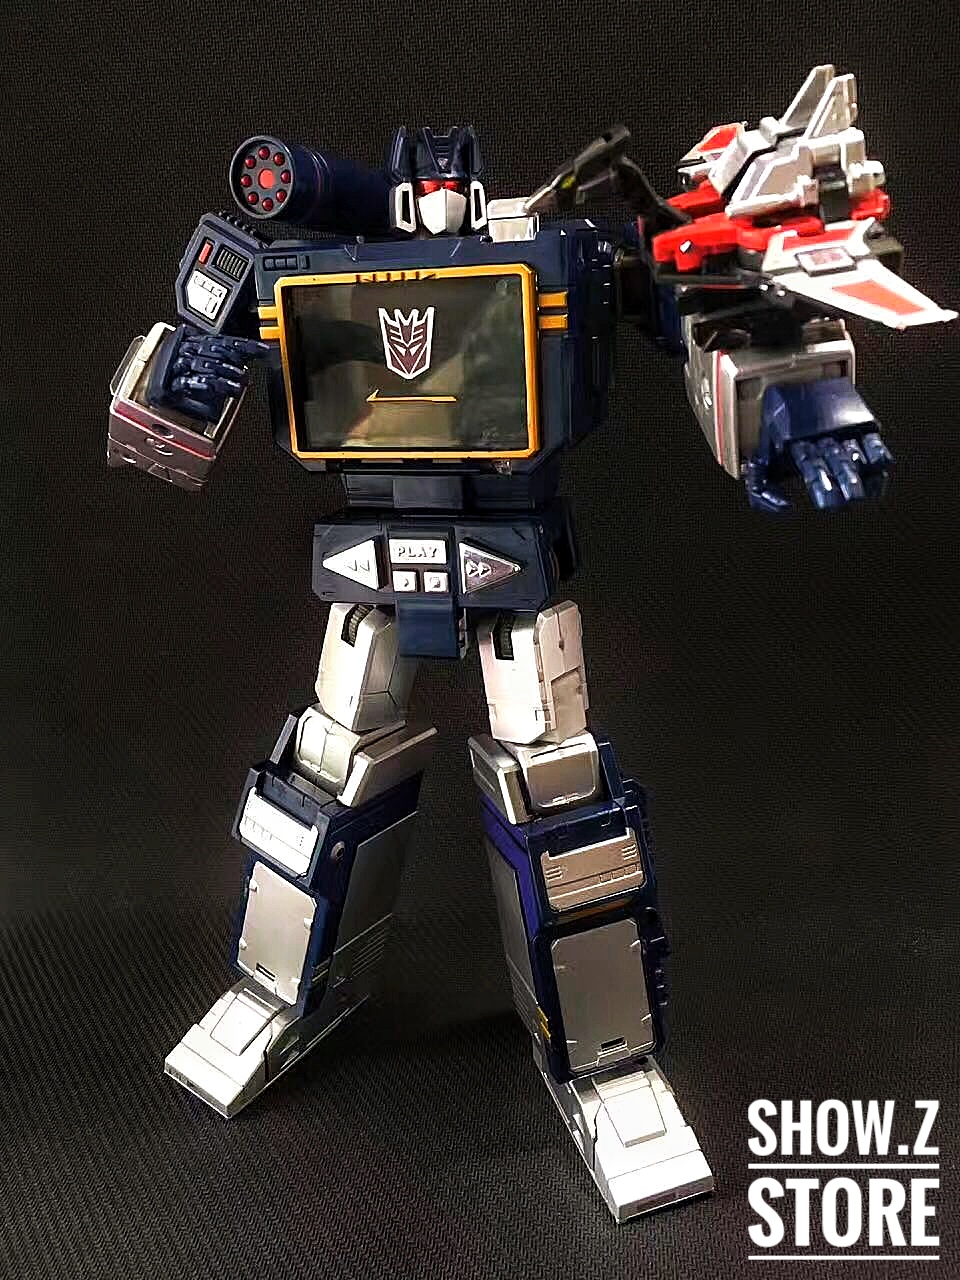 Show Z Store 4th Party MP 13 MASTERPIECE SOUNDWAVE MP 13 MP13 Transformation Action Figure